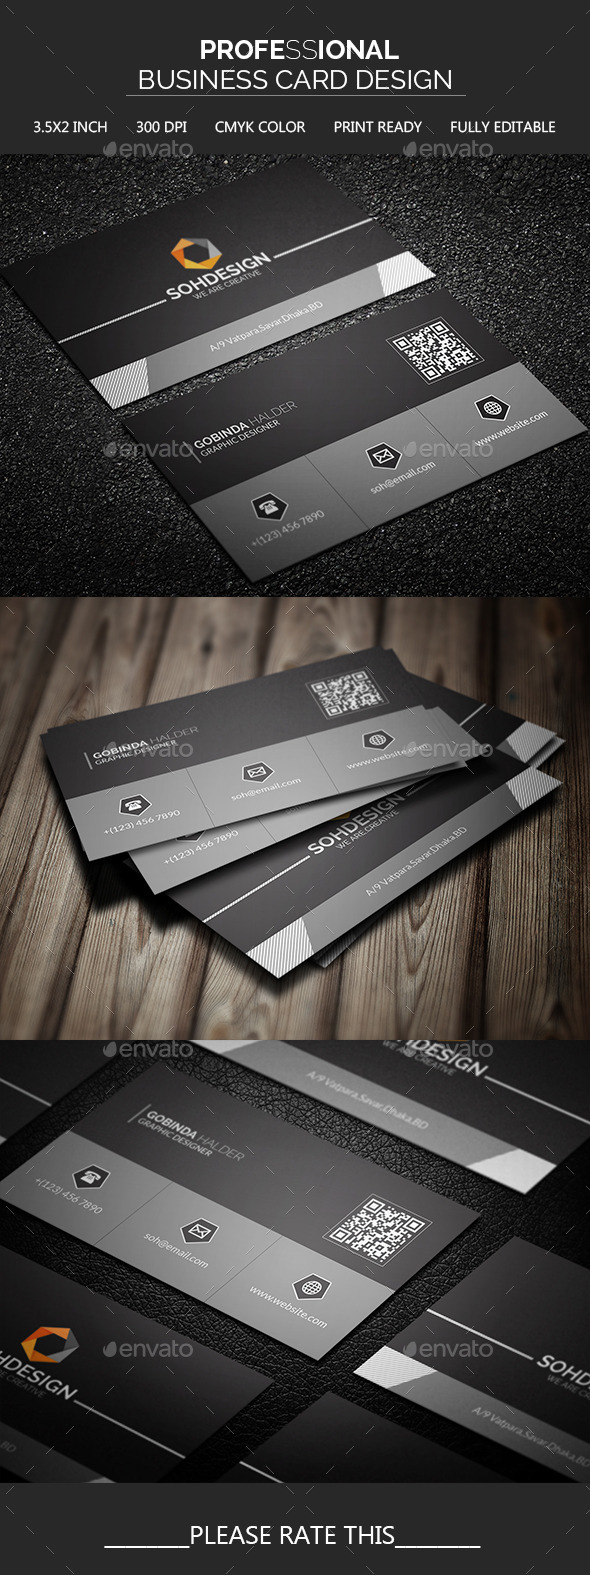 GraphicRiver Professional Business Card Design 11552445